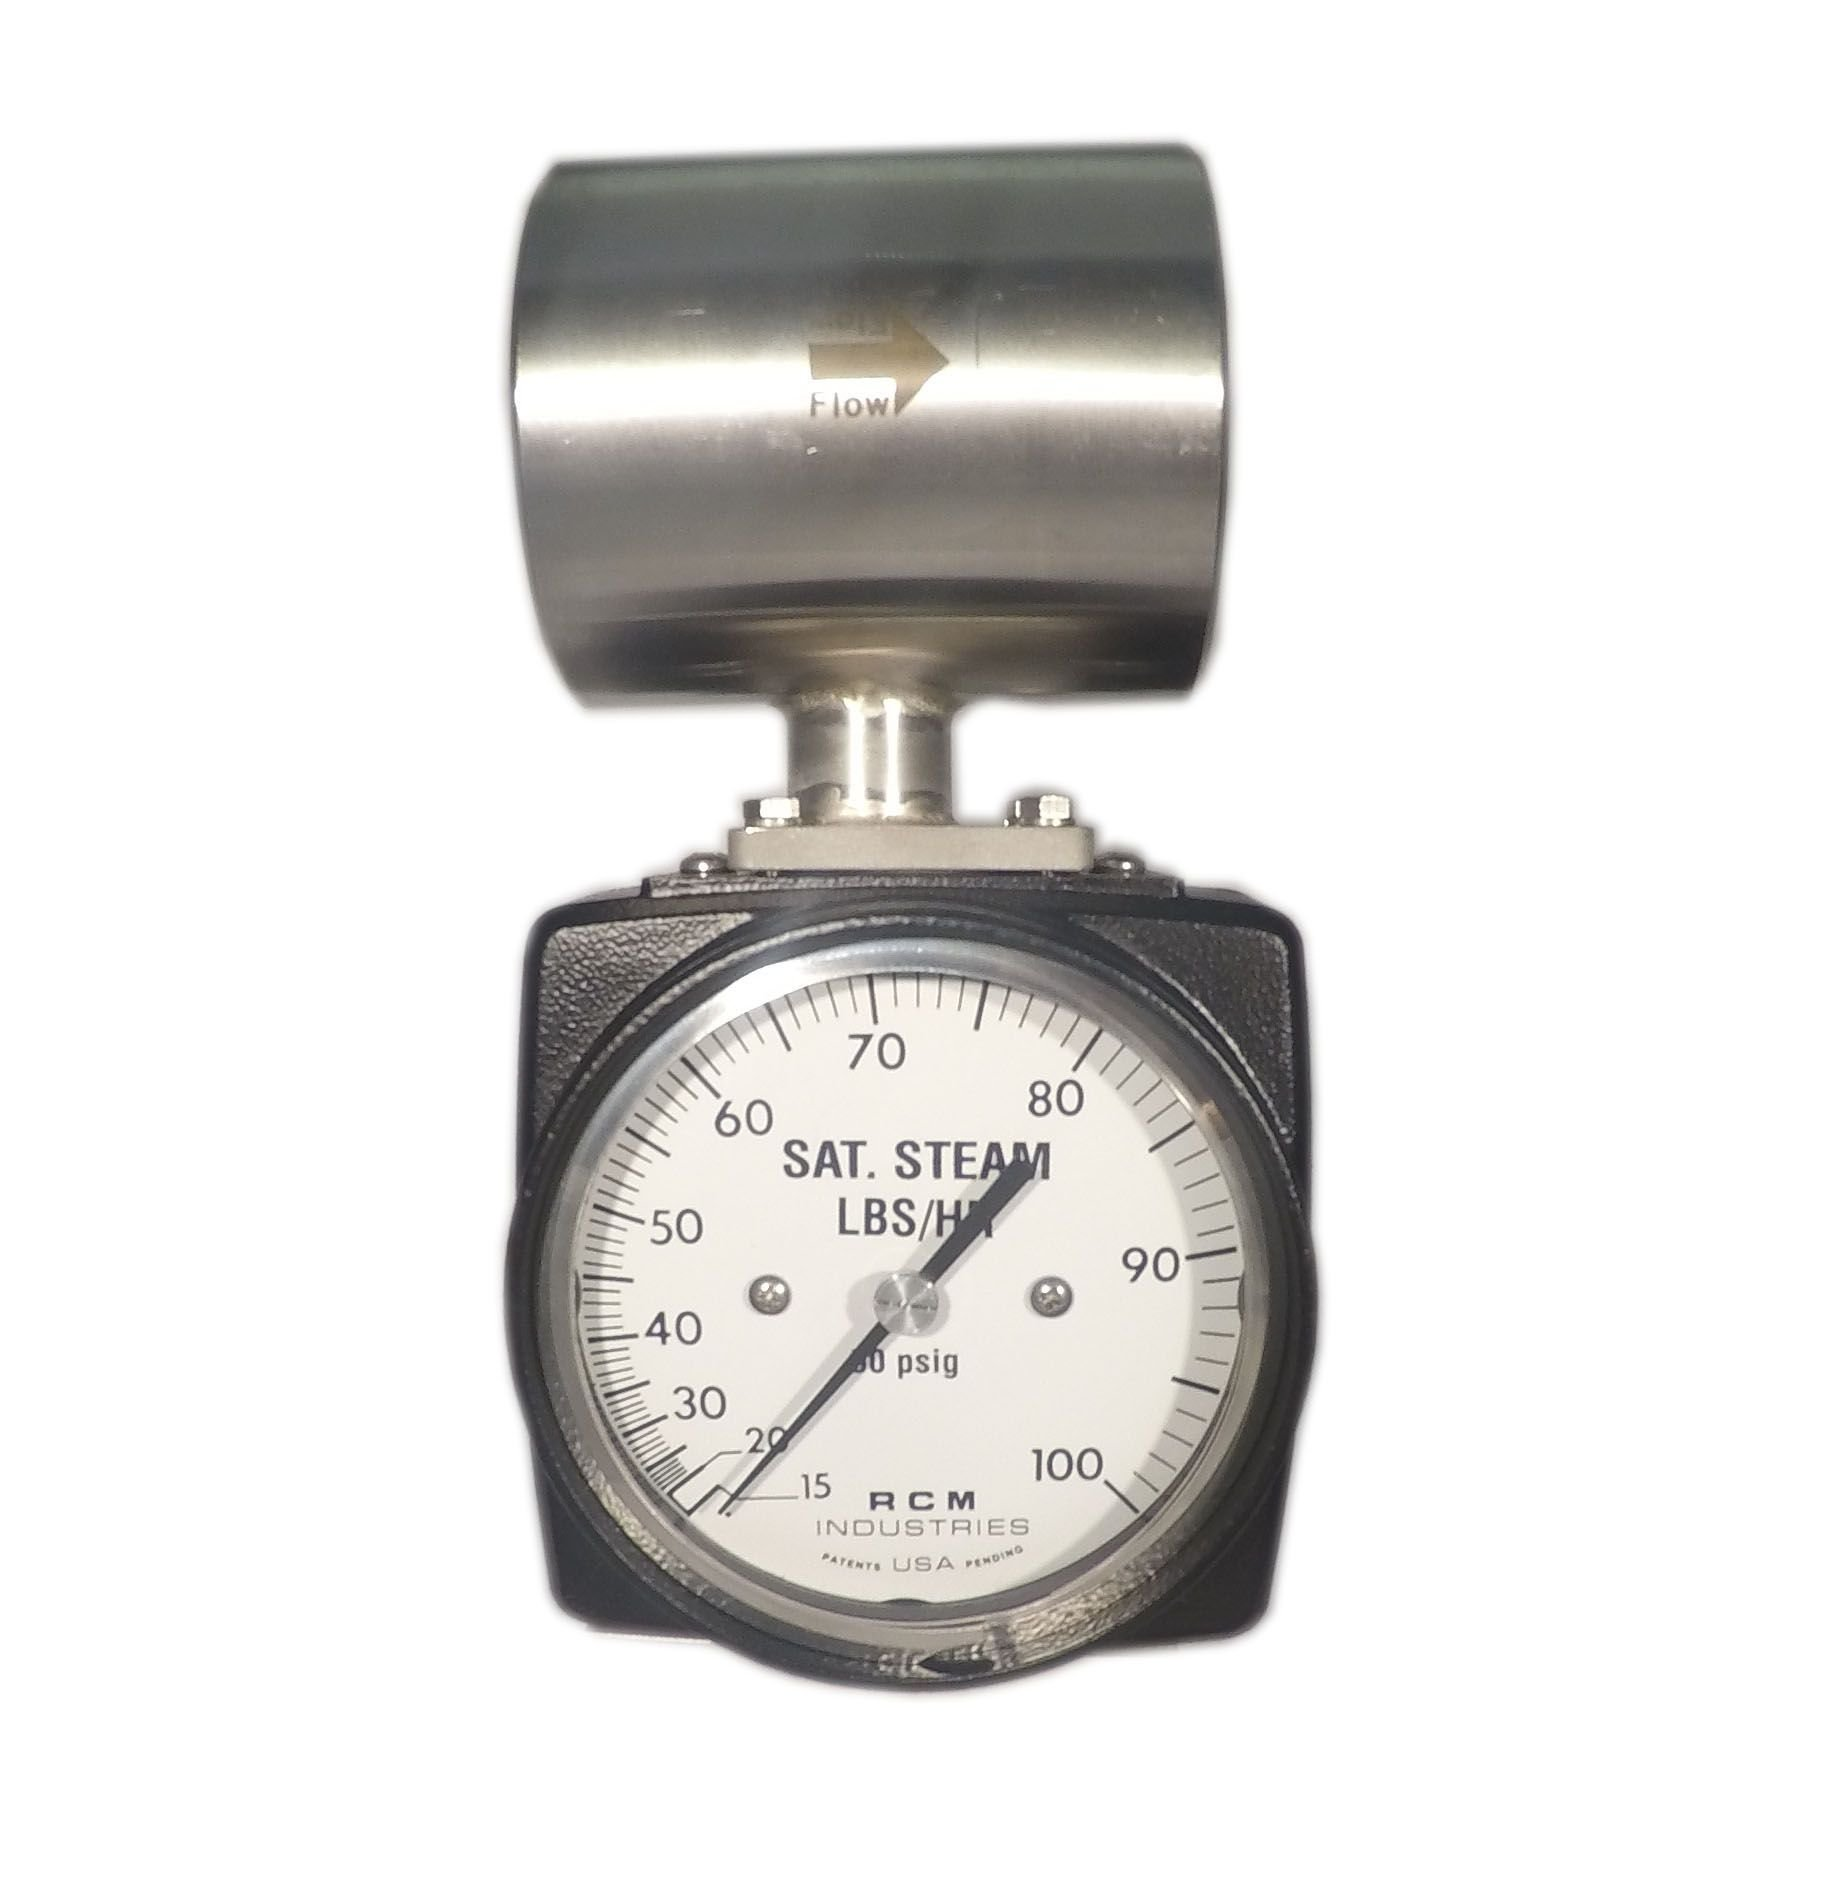 Saturated steam differential pressure flow meters